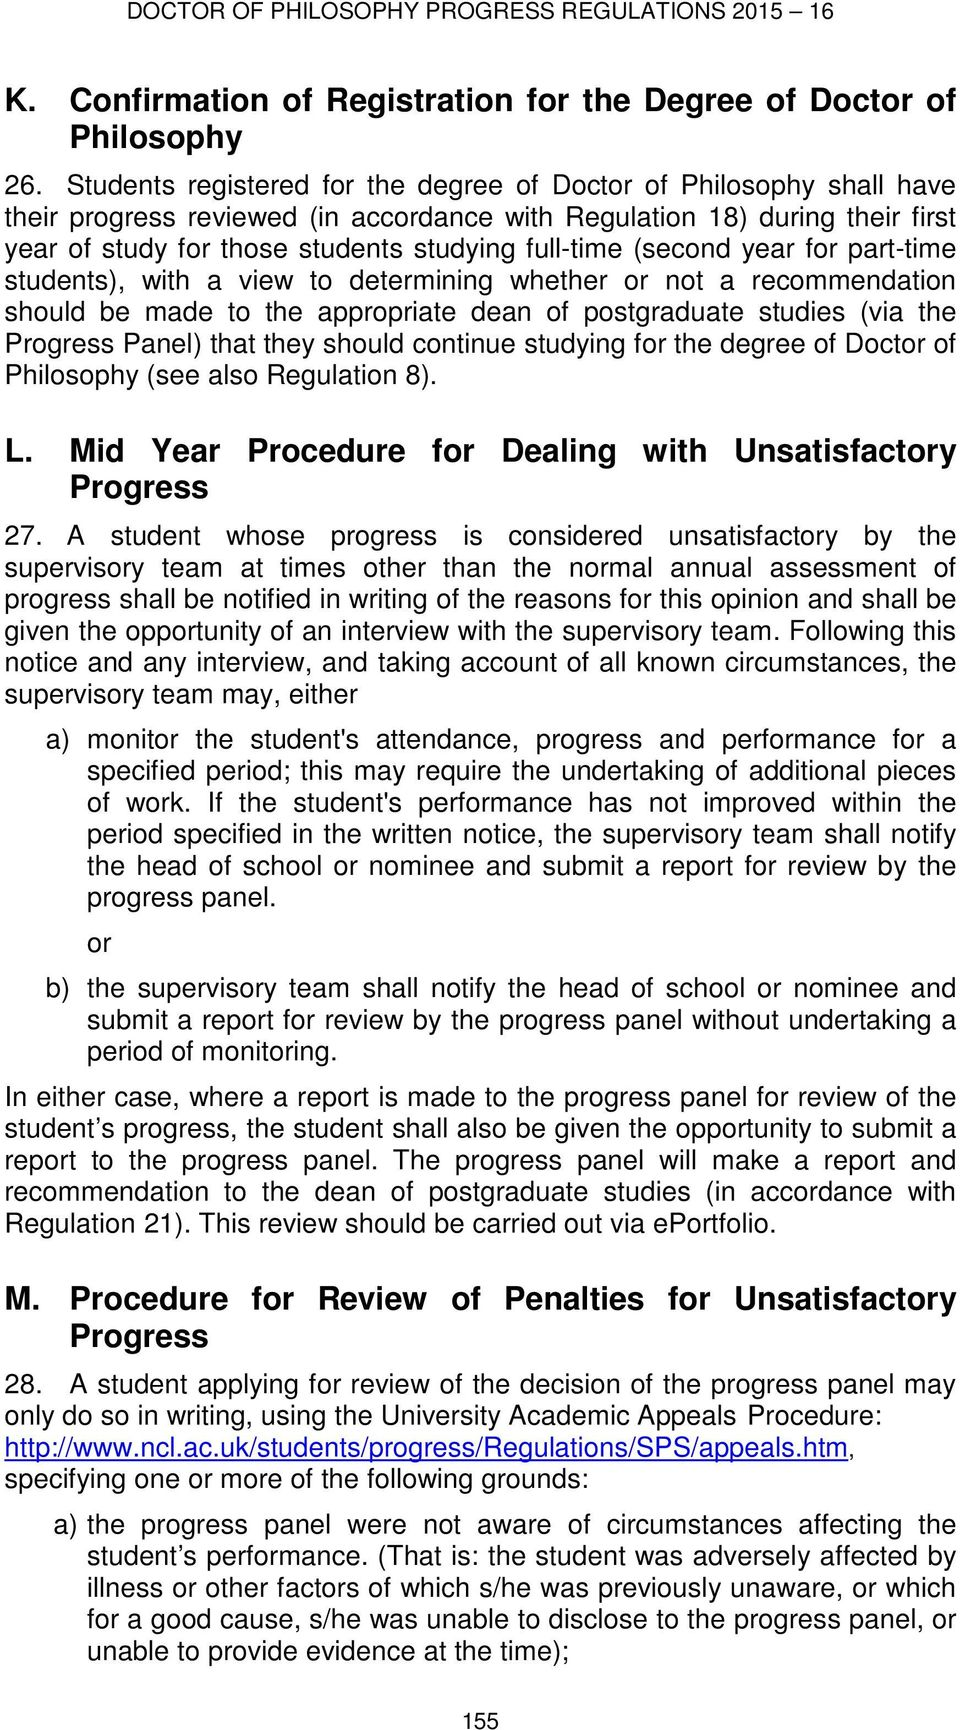 (second year for part-time students), with a view to determining whether or not a recommendation should be made to the appropriate dean of postgraduate studies (via the Progress Panel) that they